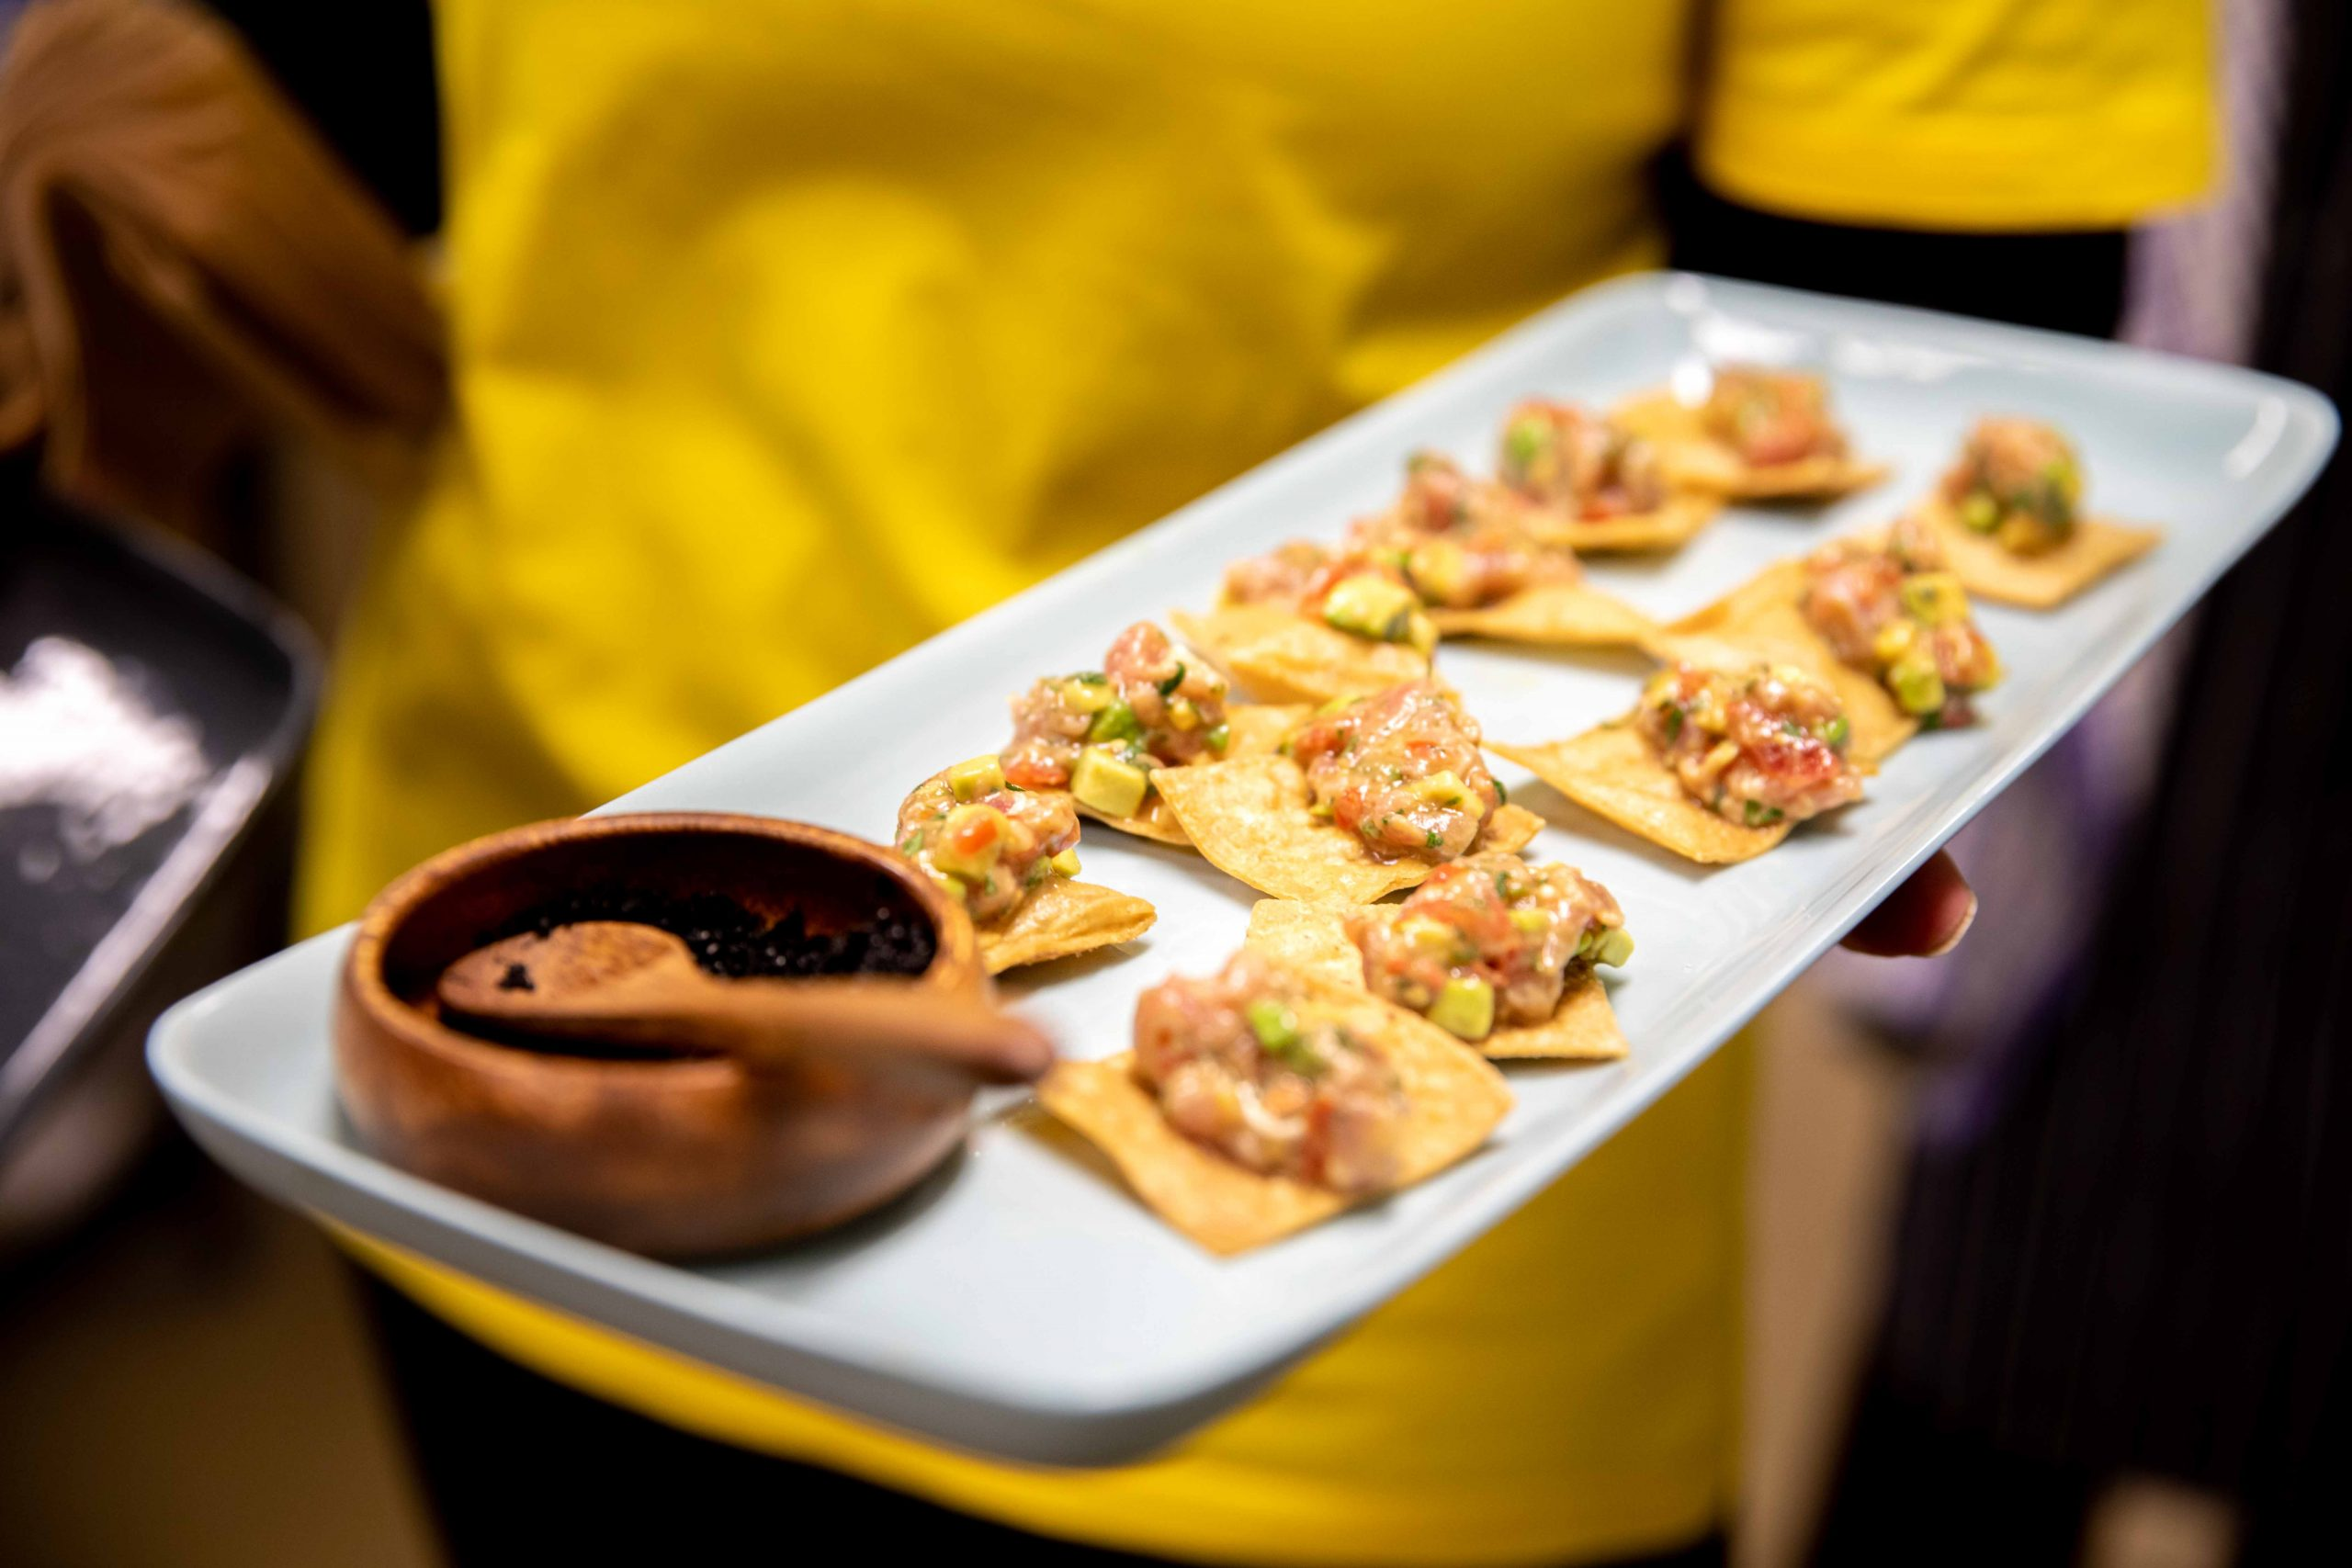 Tray of food during a ForPurposeCo event